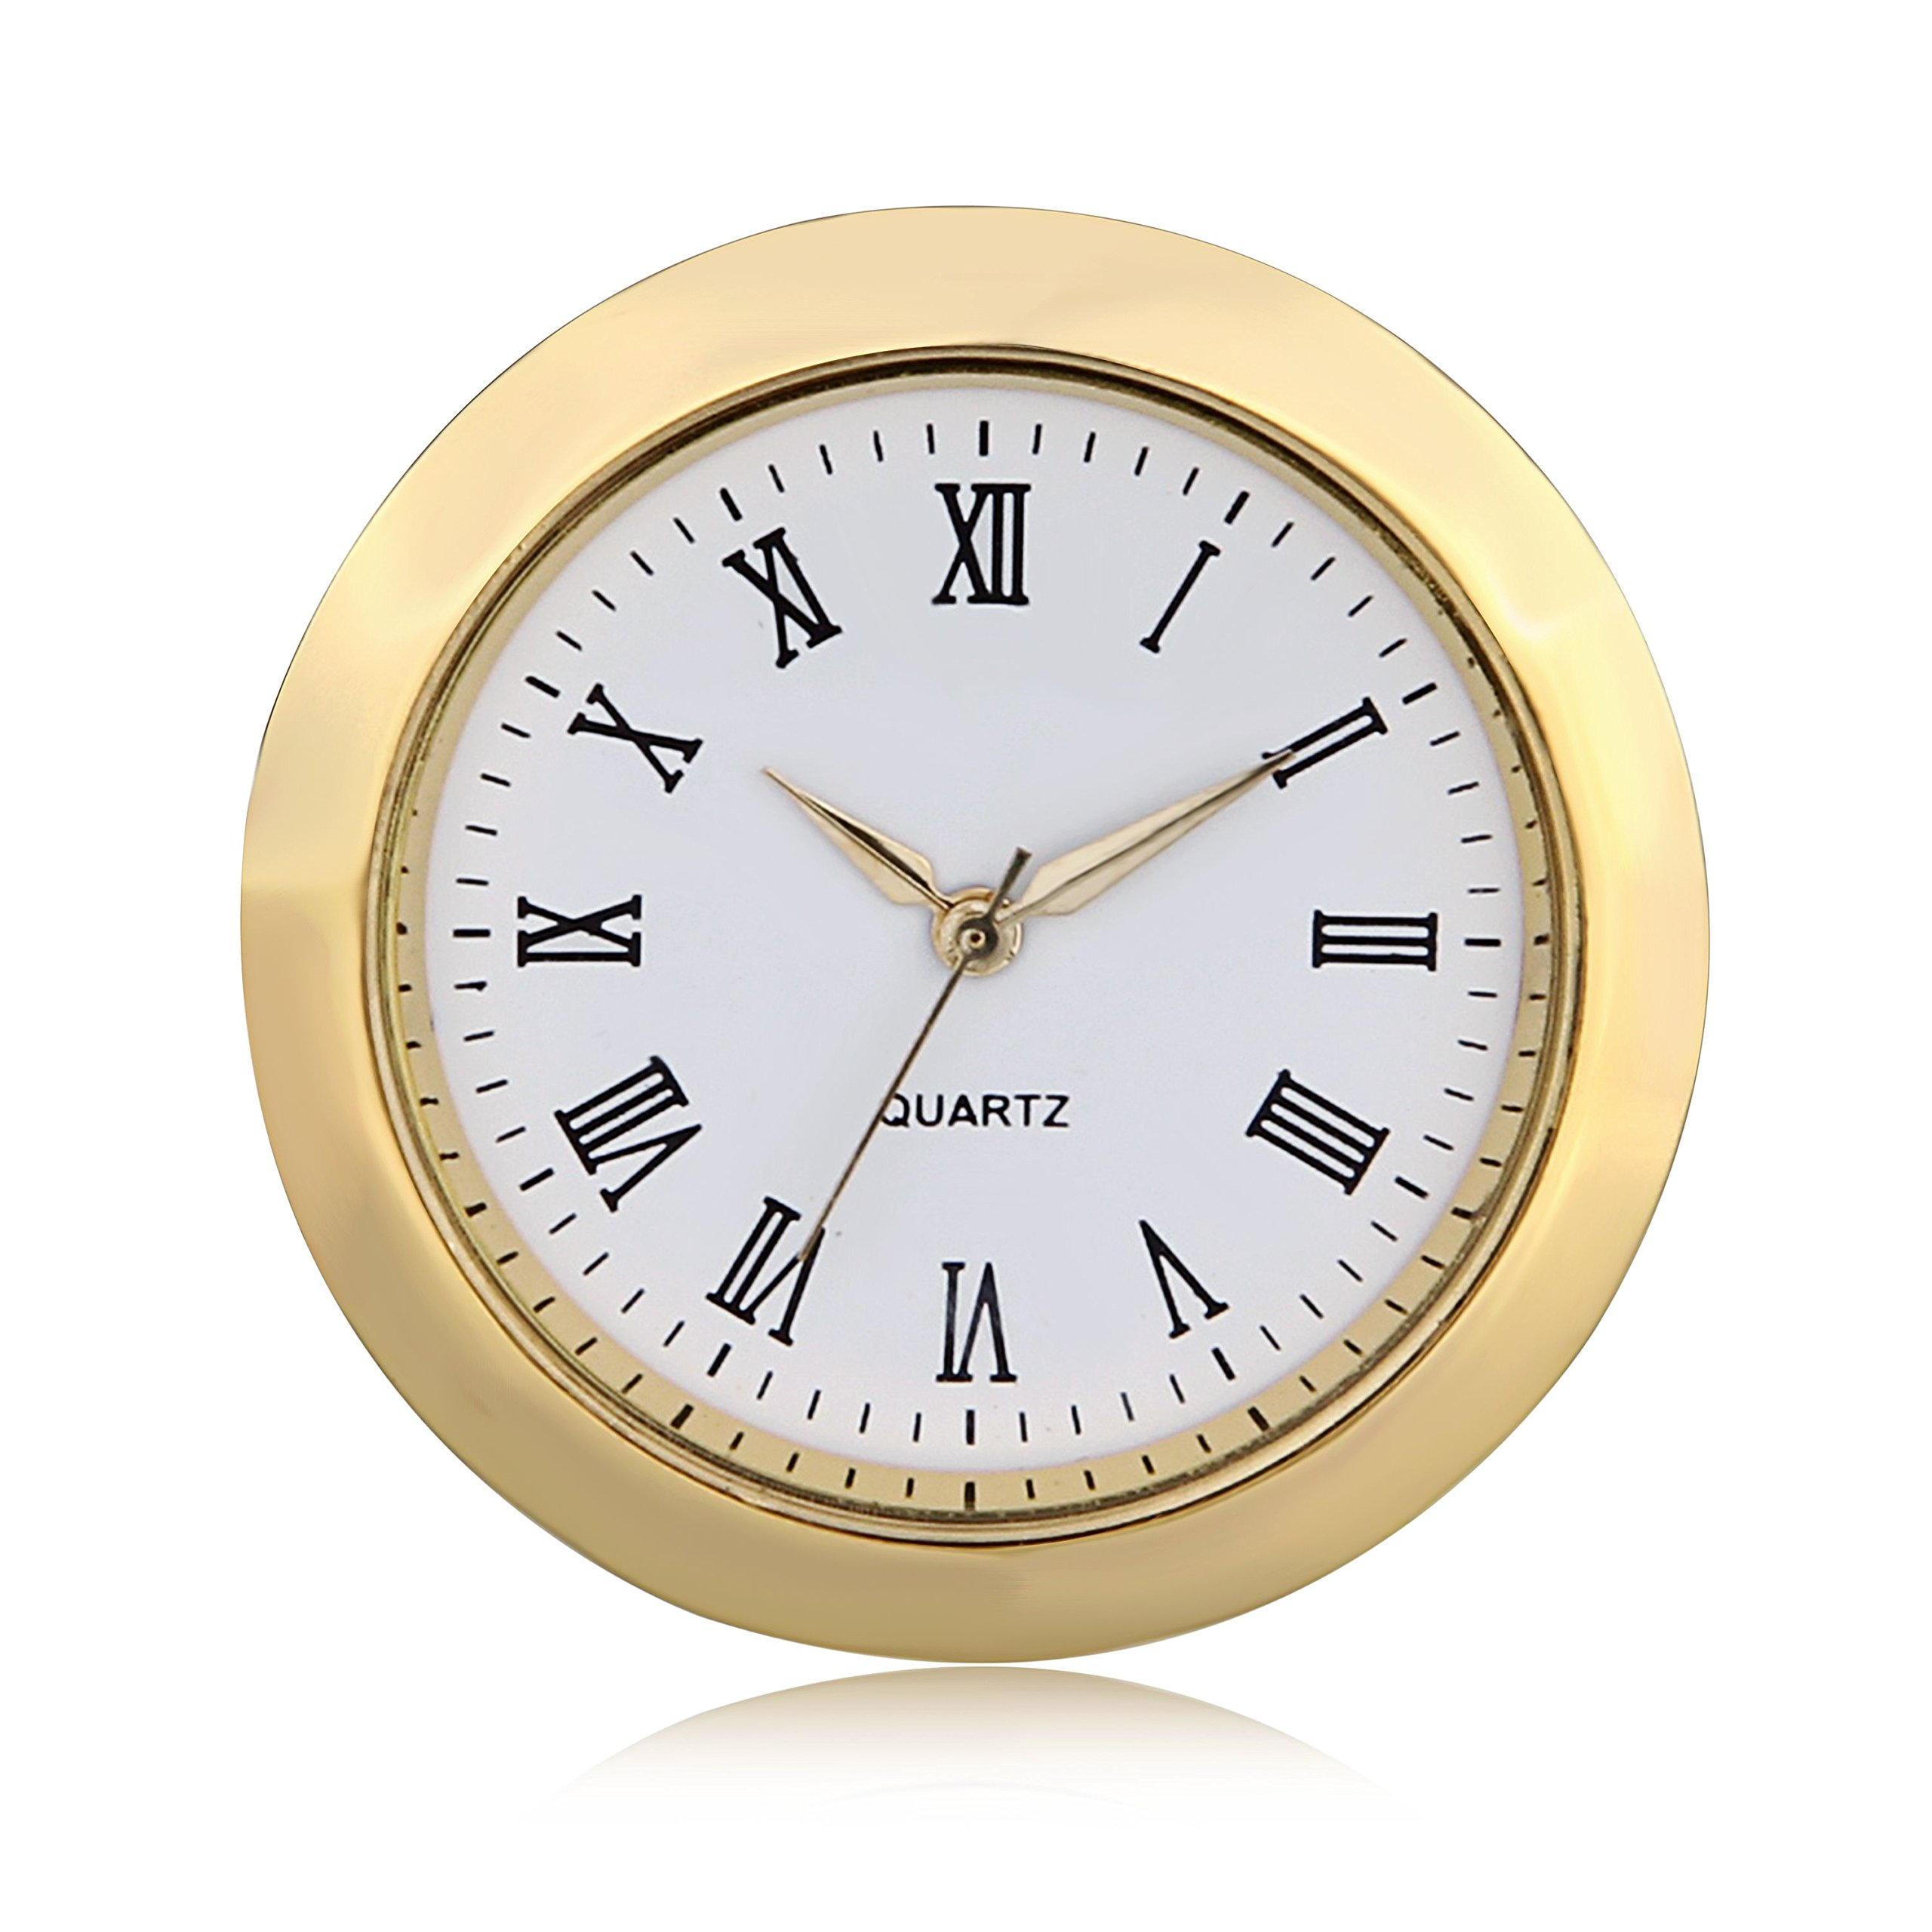 ShoppeWatch Mini Clock Insert Quartz Movement Round 1 7/16'' (35mm) Miniature Clock Fit Up White Dial Gold Tone Bezel Roman Numerals CK096GD